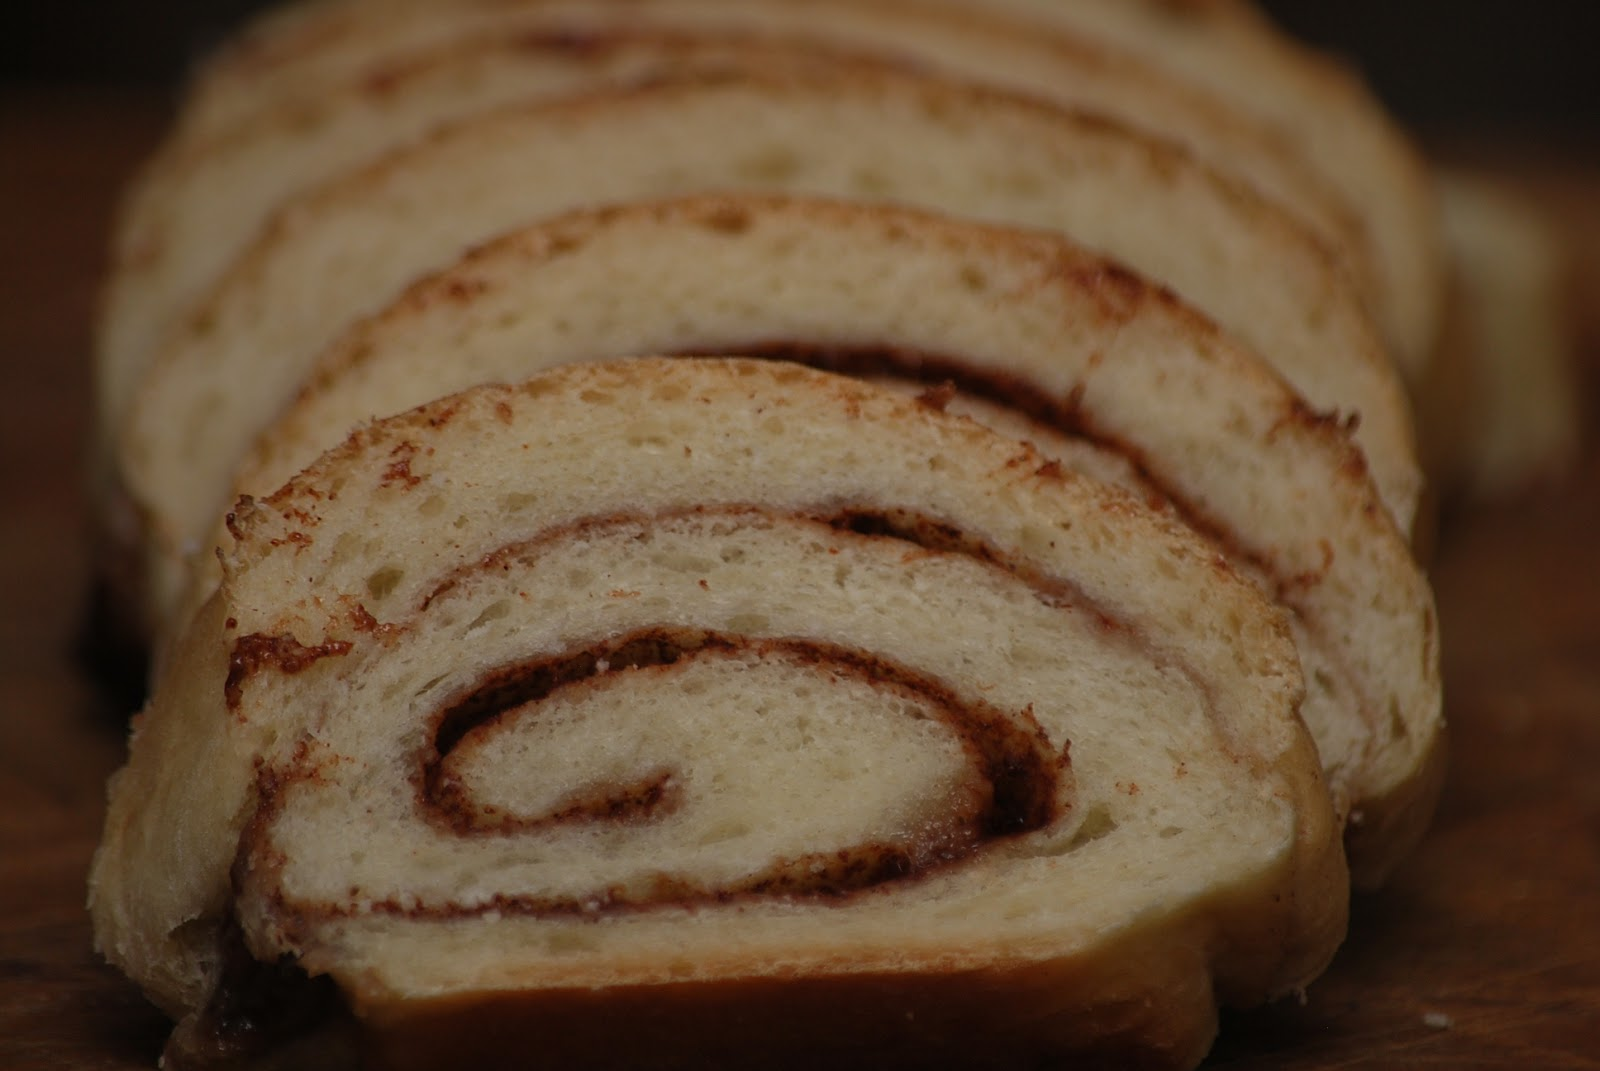 My story in recipes: Cinnamon Swirl Bread